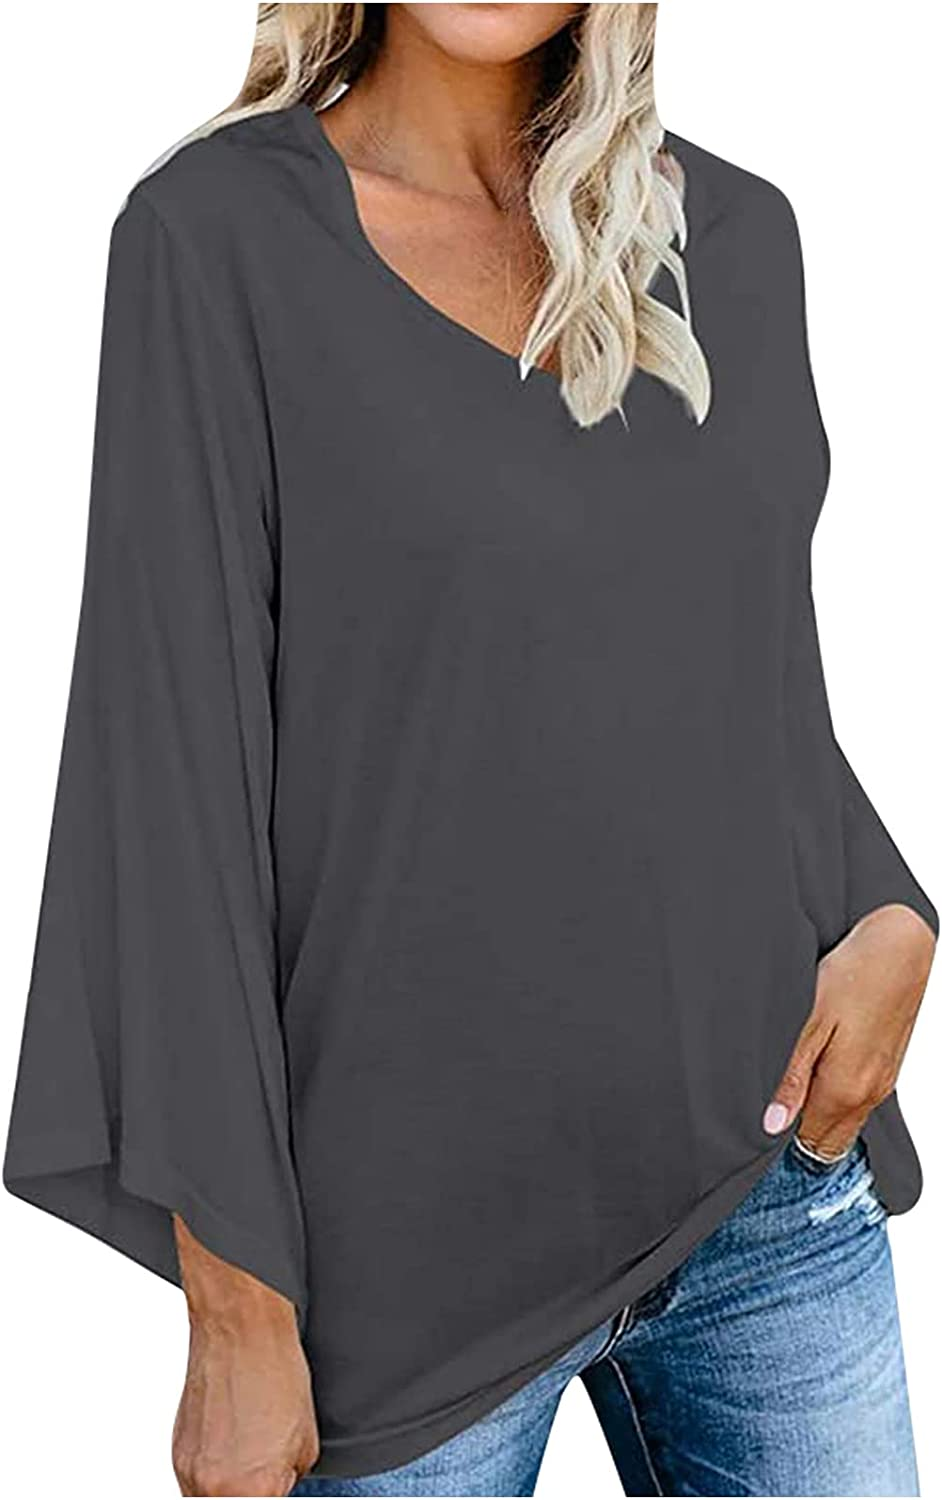 Women's Loose Fit Casual Long Butterfly Sleeve Deep V Neck Solid Color Hide Tummy Vintage Tunic Top Tshirts Blouse Tee